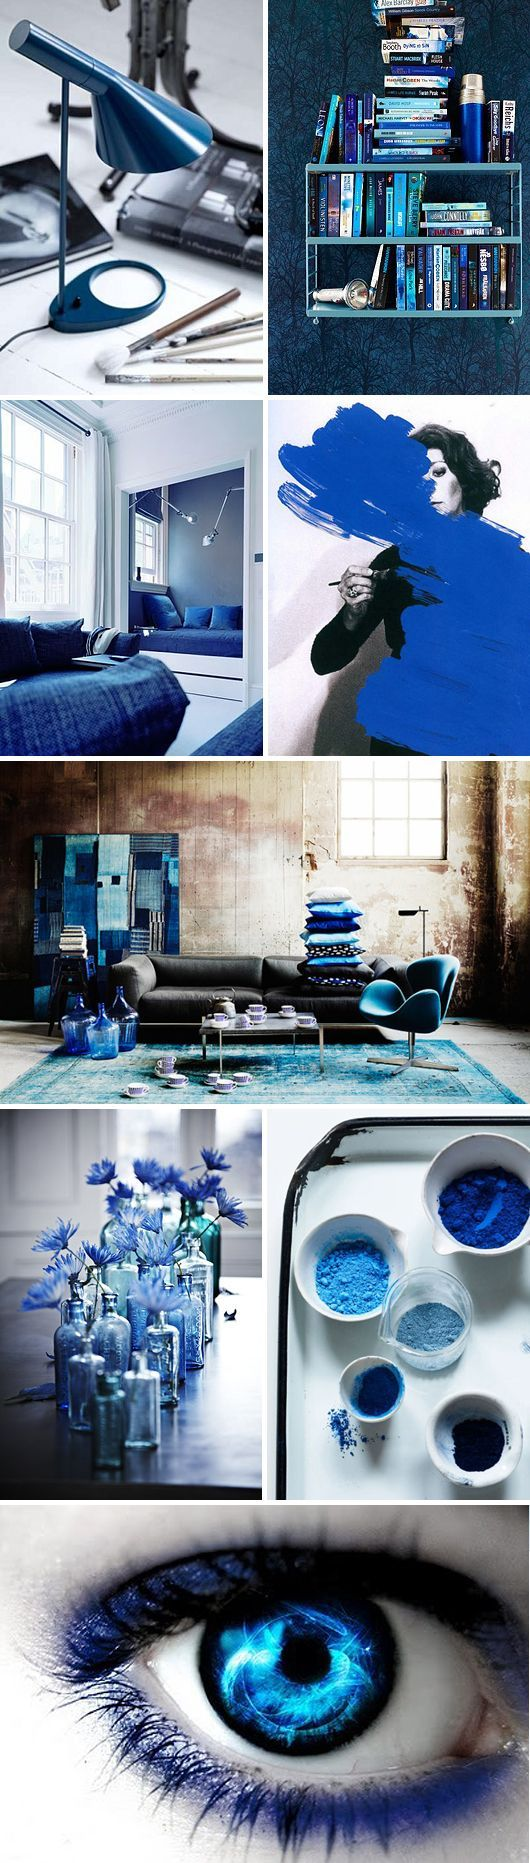 """SHE LOVES INTERIOR DESIGN! She can build a room around any color or object. """"Scandinavian Interior Design Style / Blue mood board"""" - Decoration for House"""